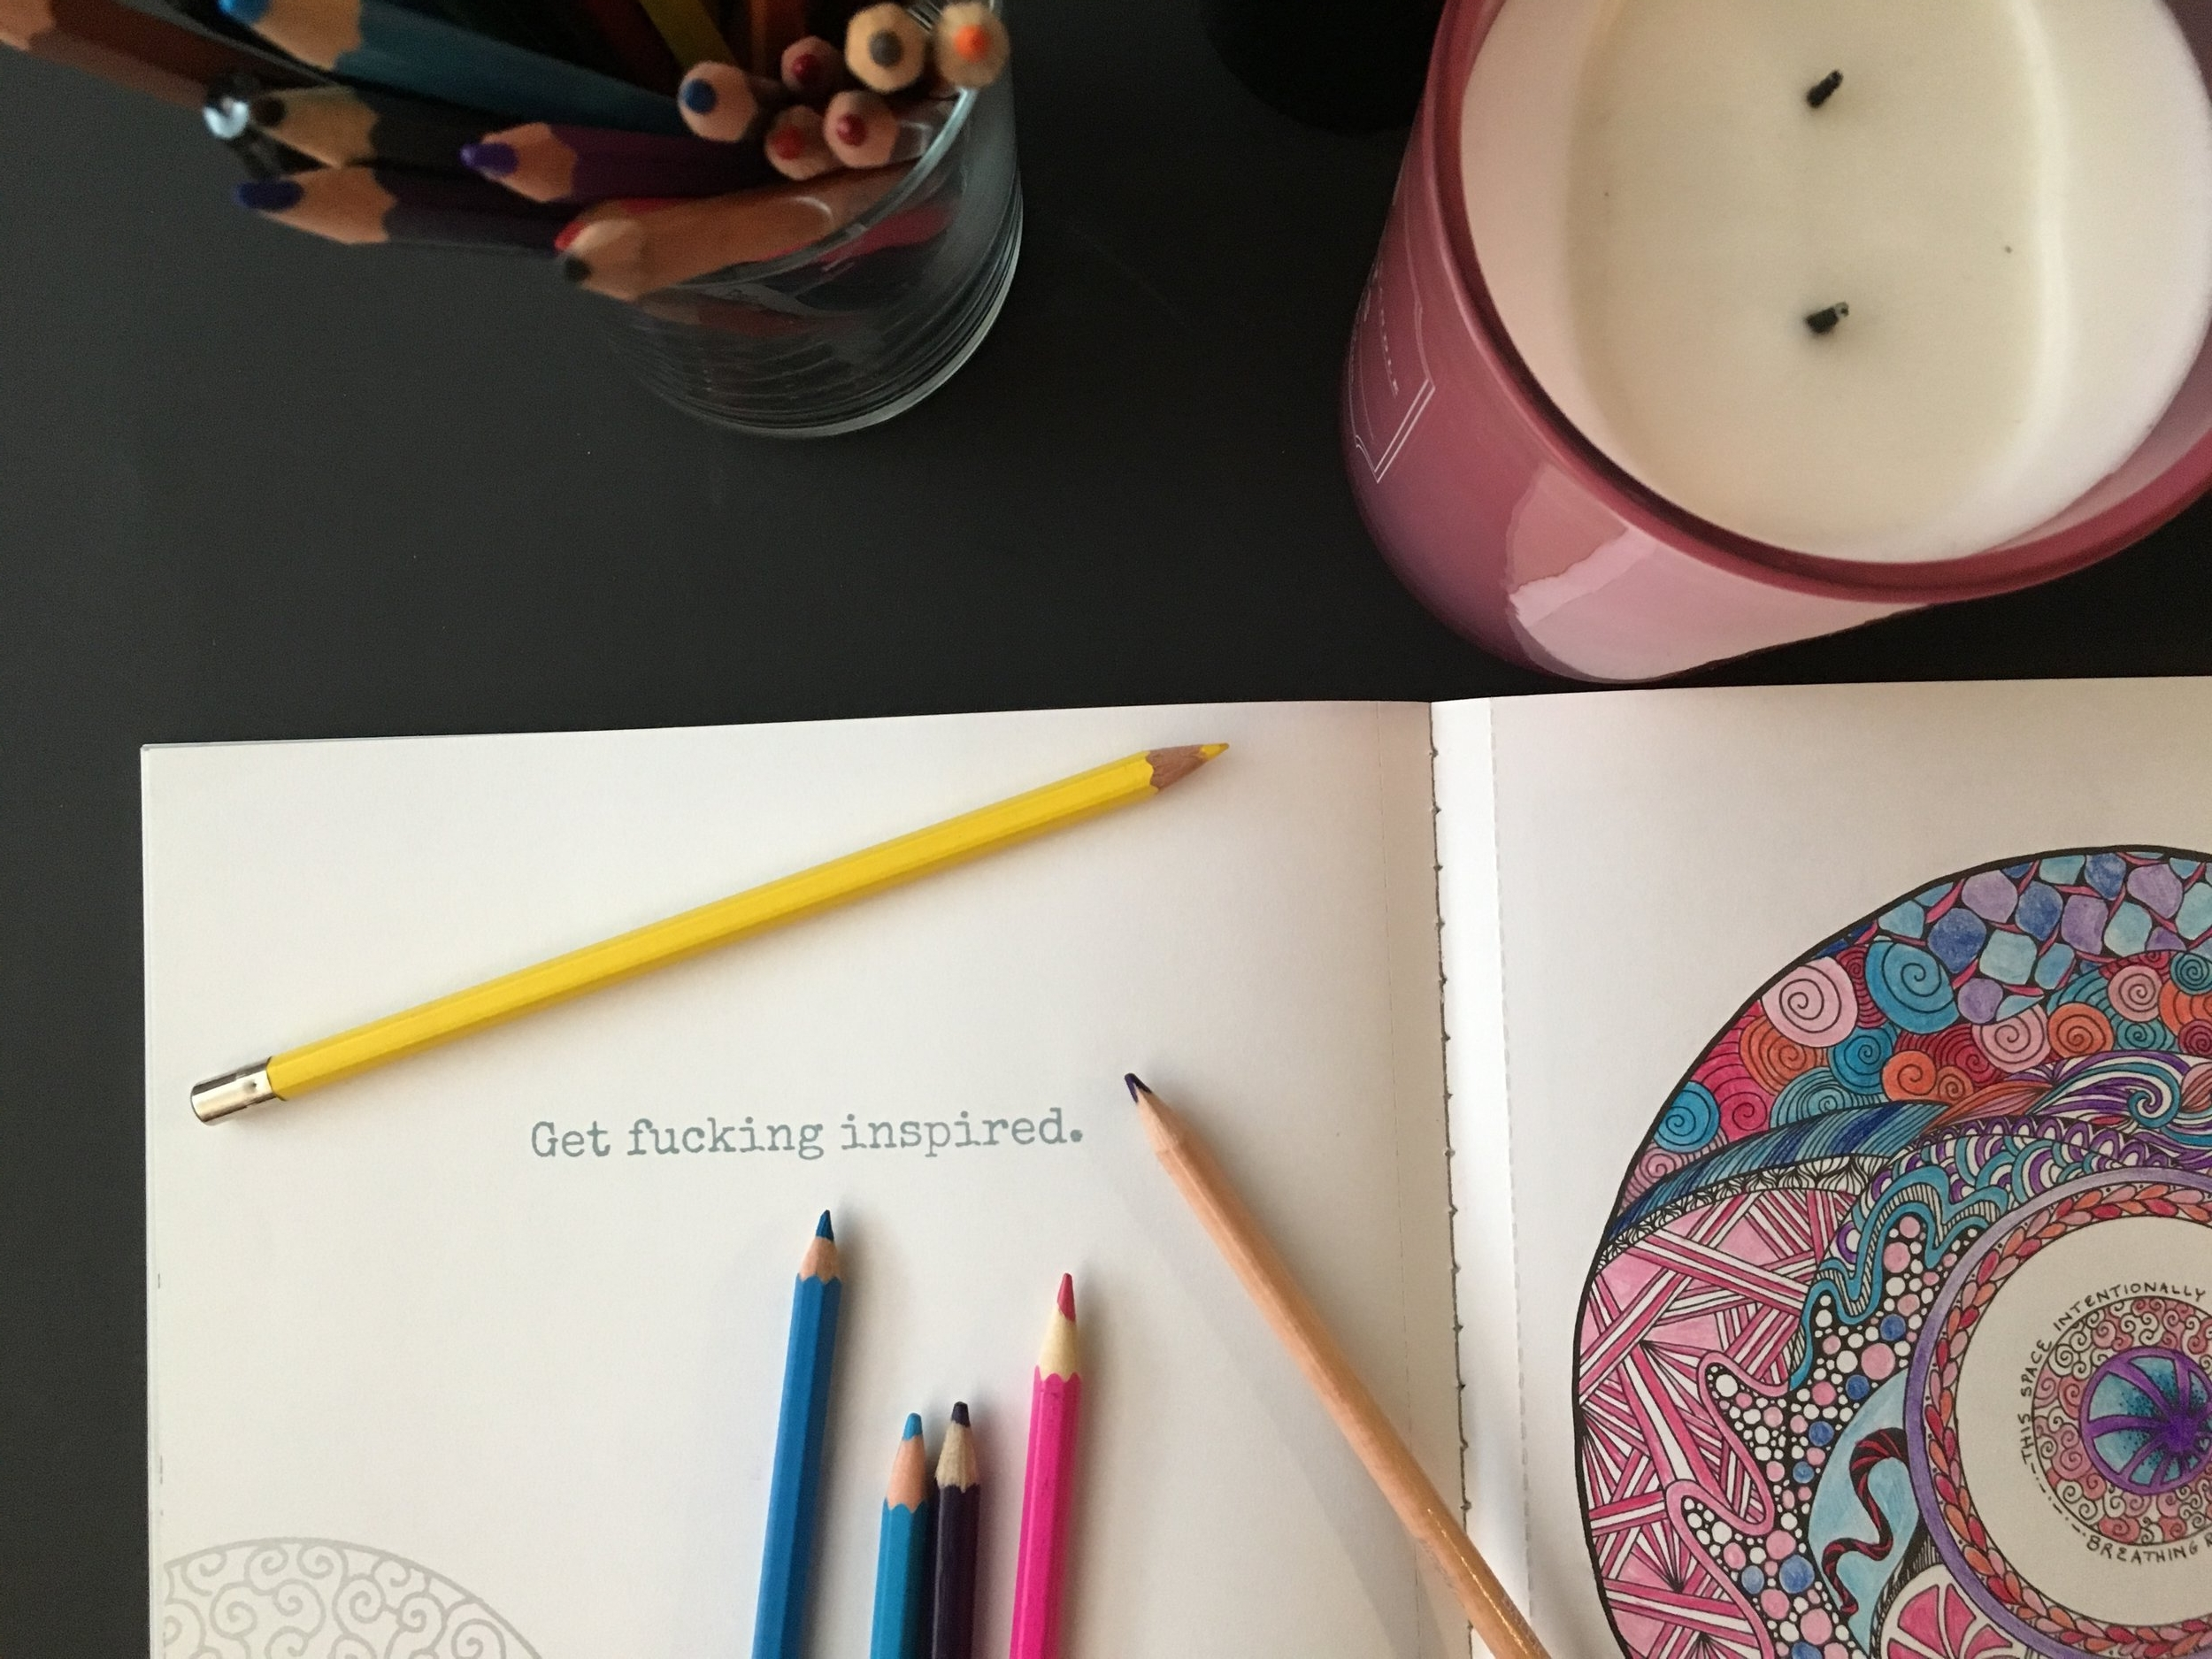 Text: Get fucking inspired. (left)